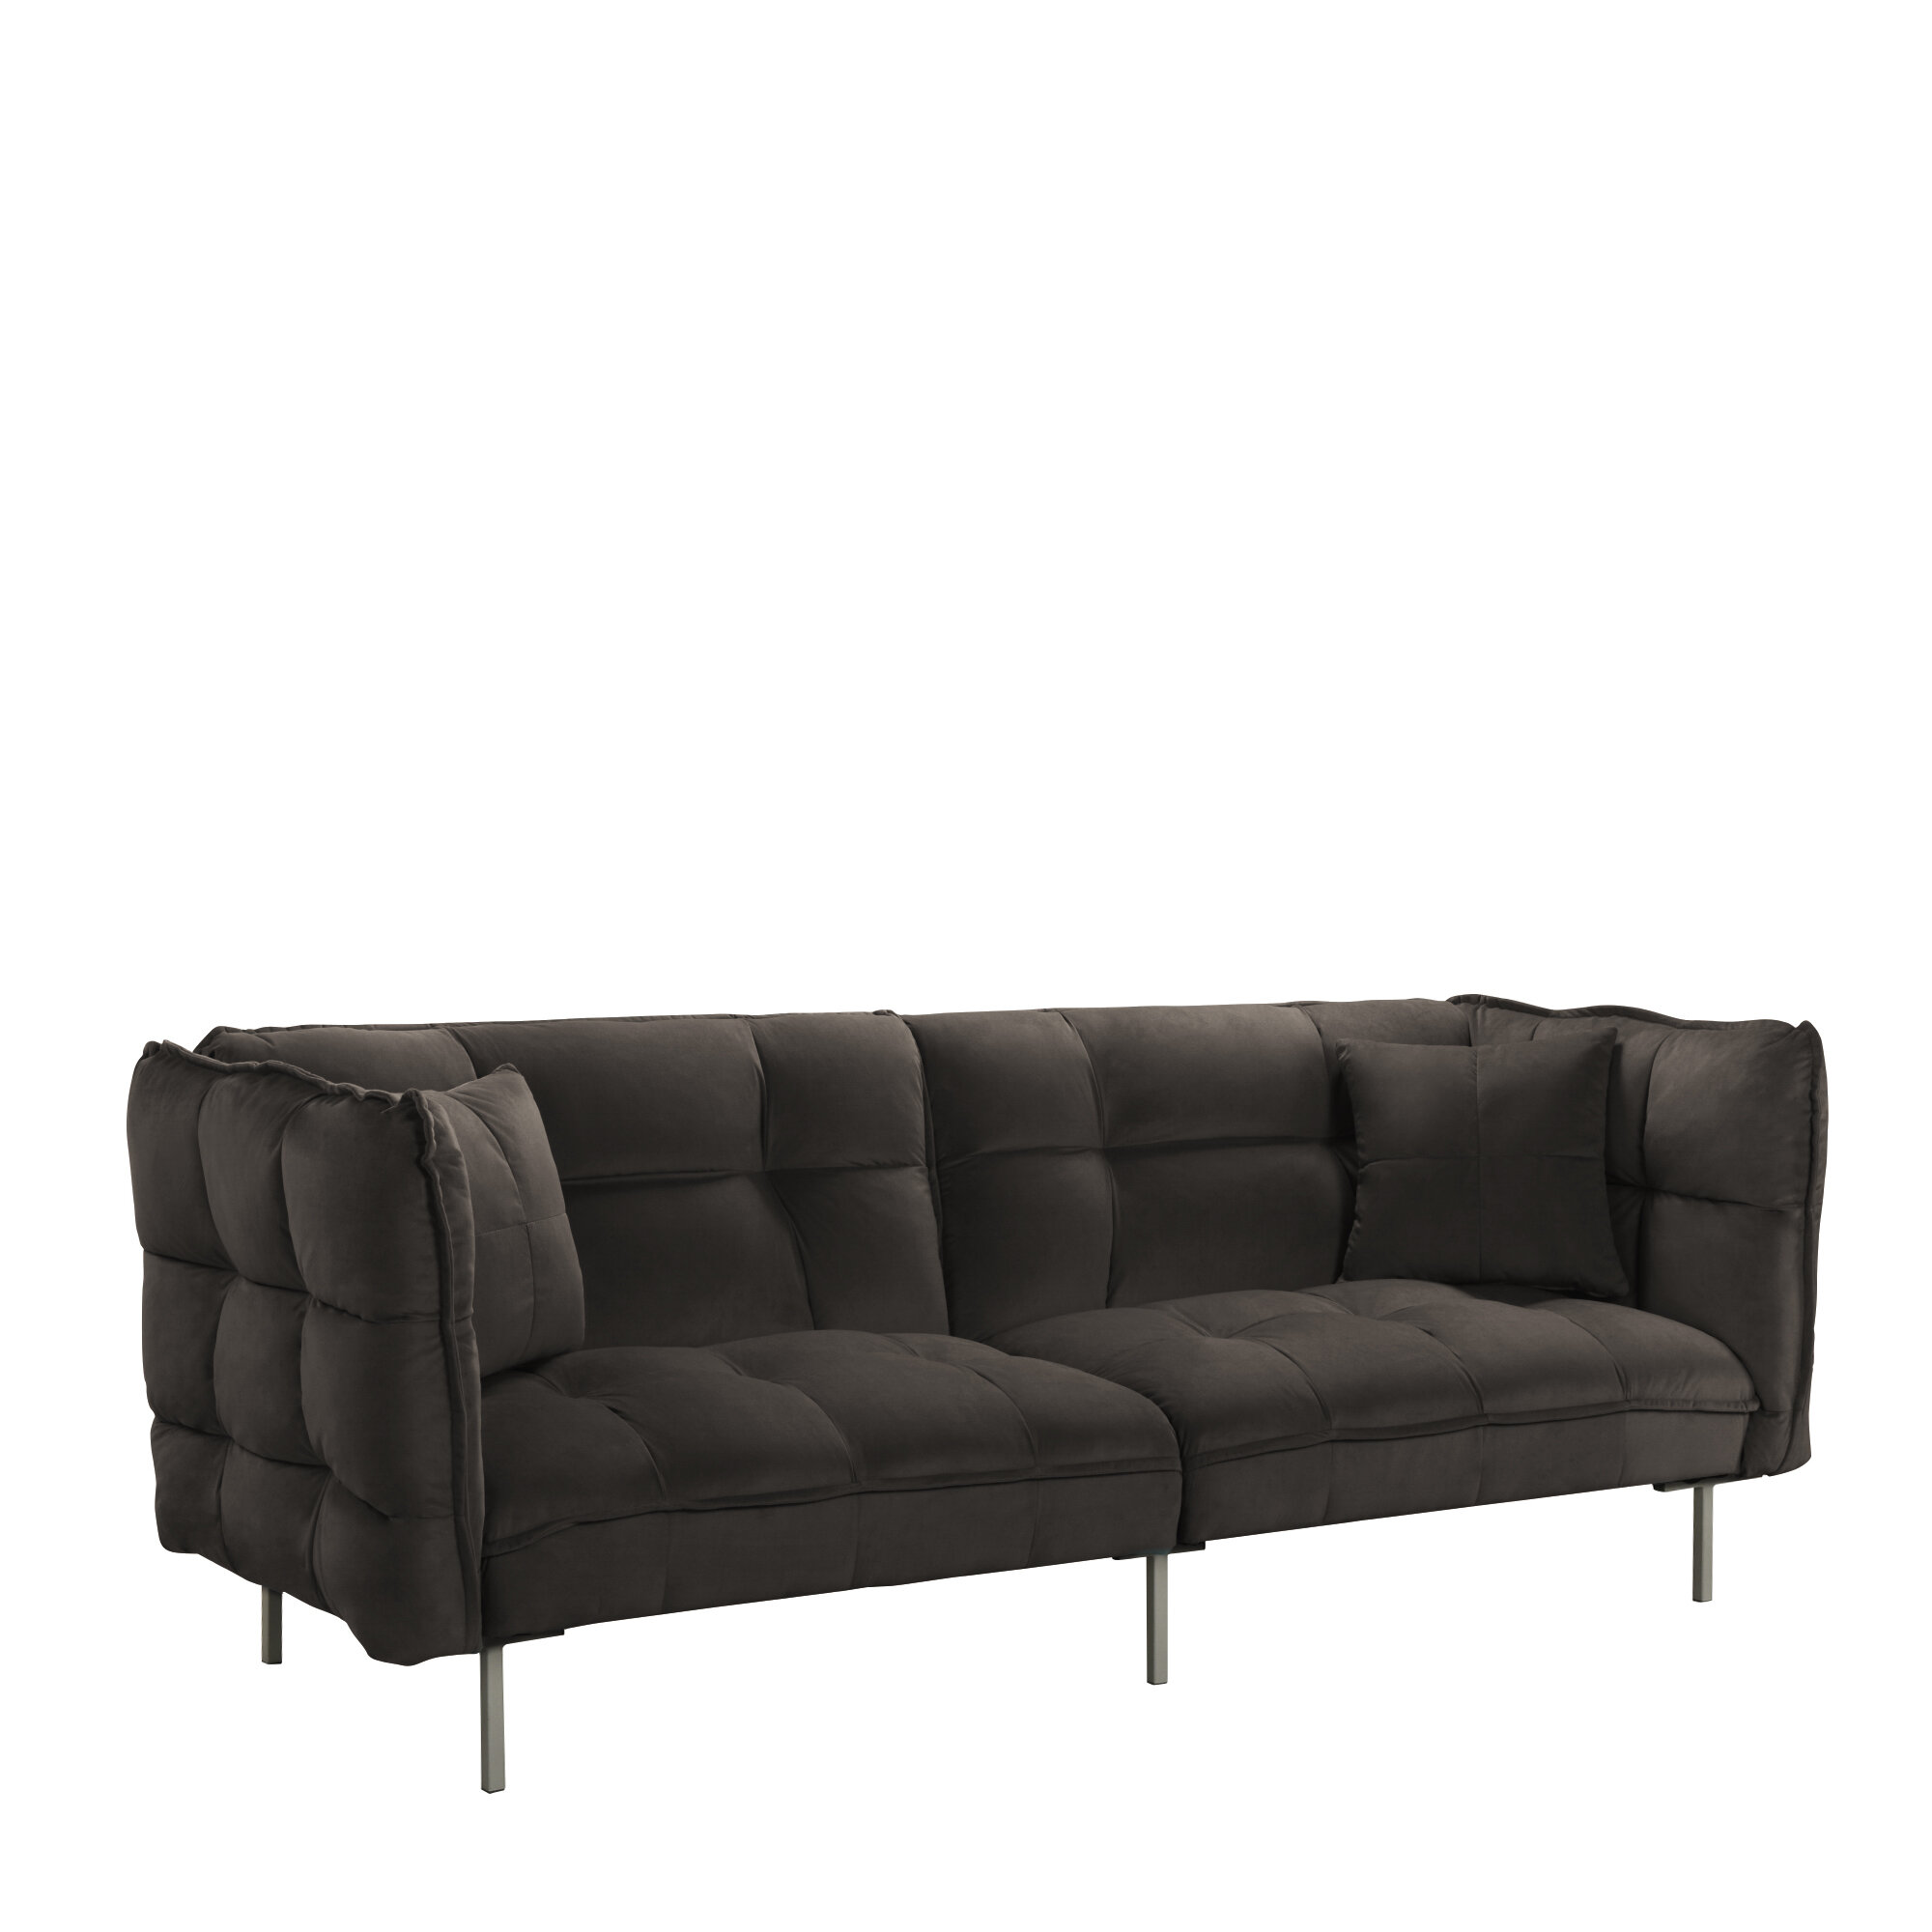 Astonishing Germann Convertible Sofa Pdpeps Interior Chair Design Pdpepsorg